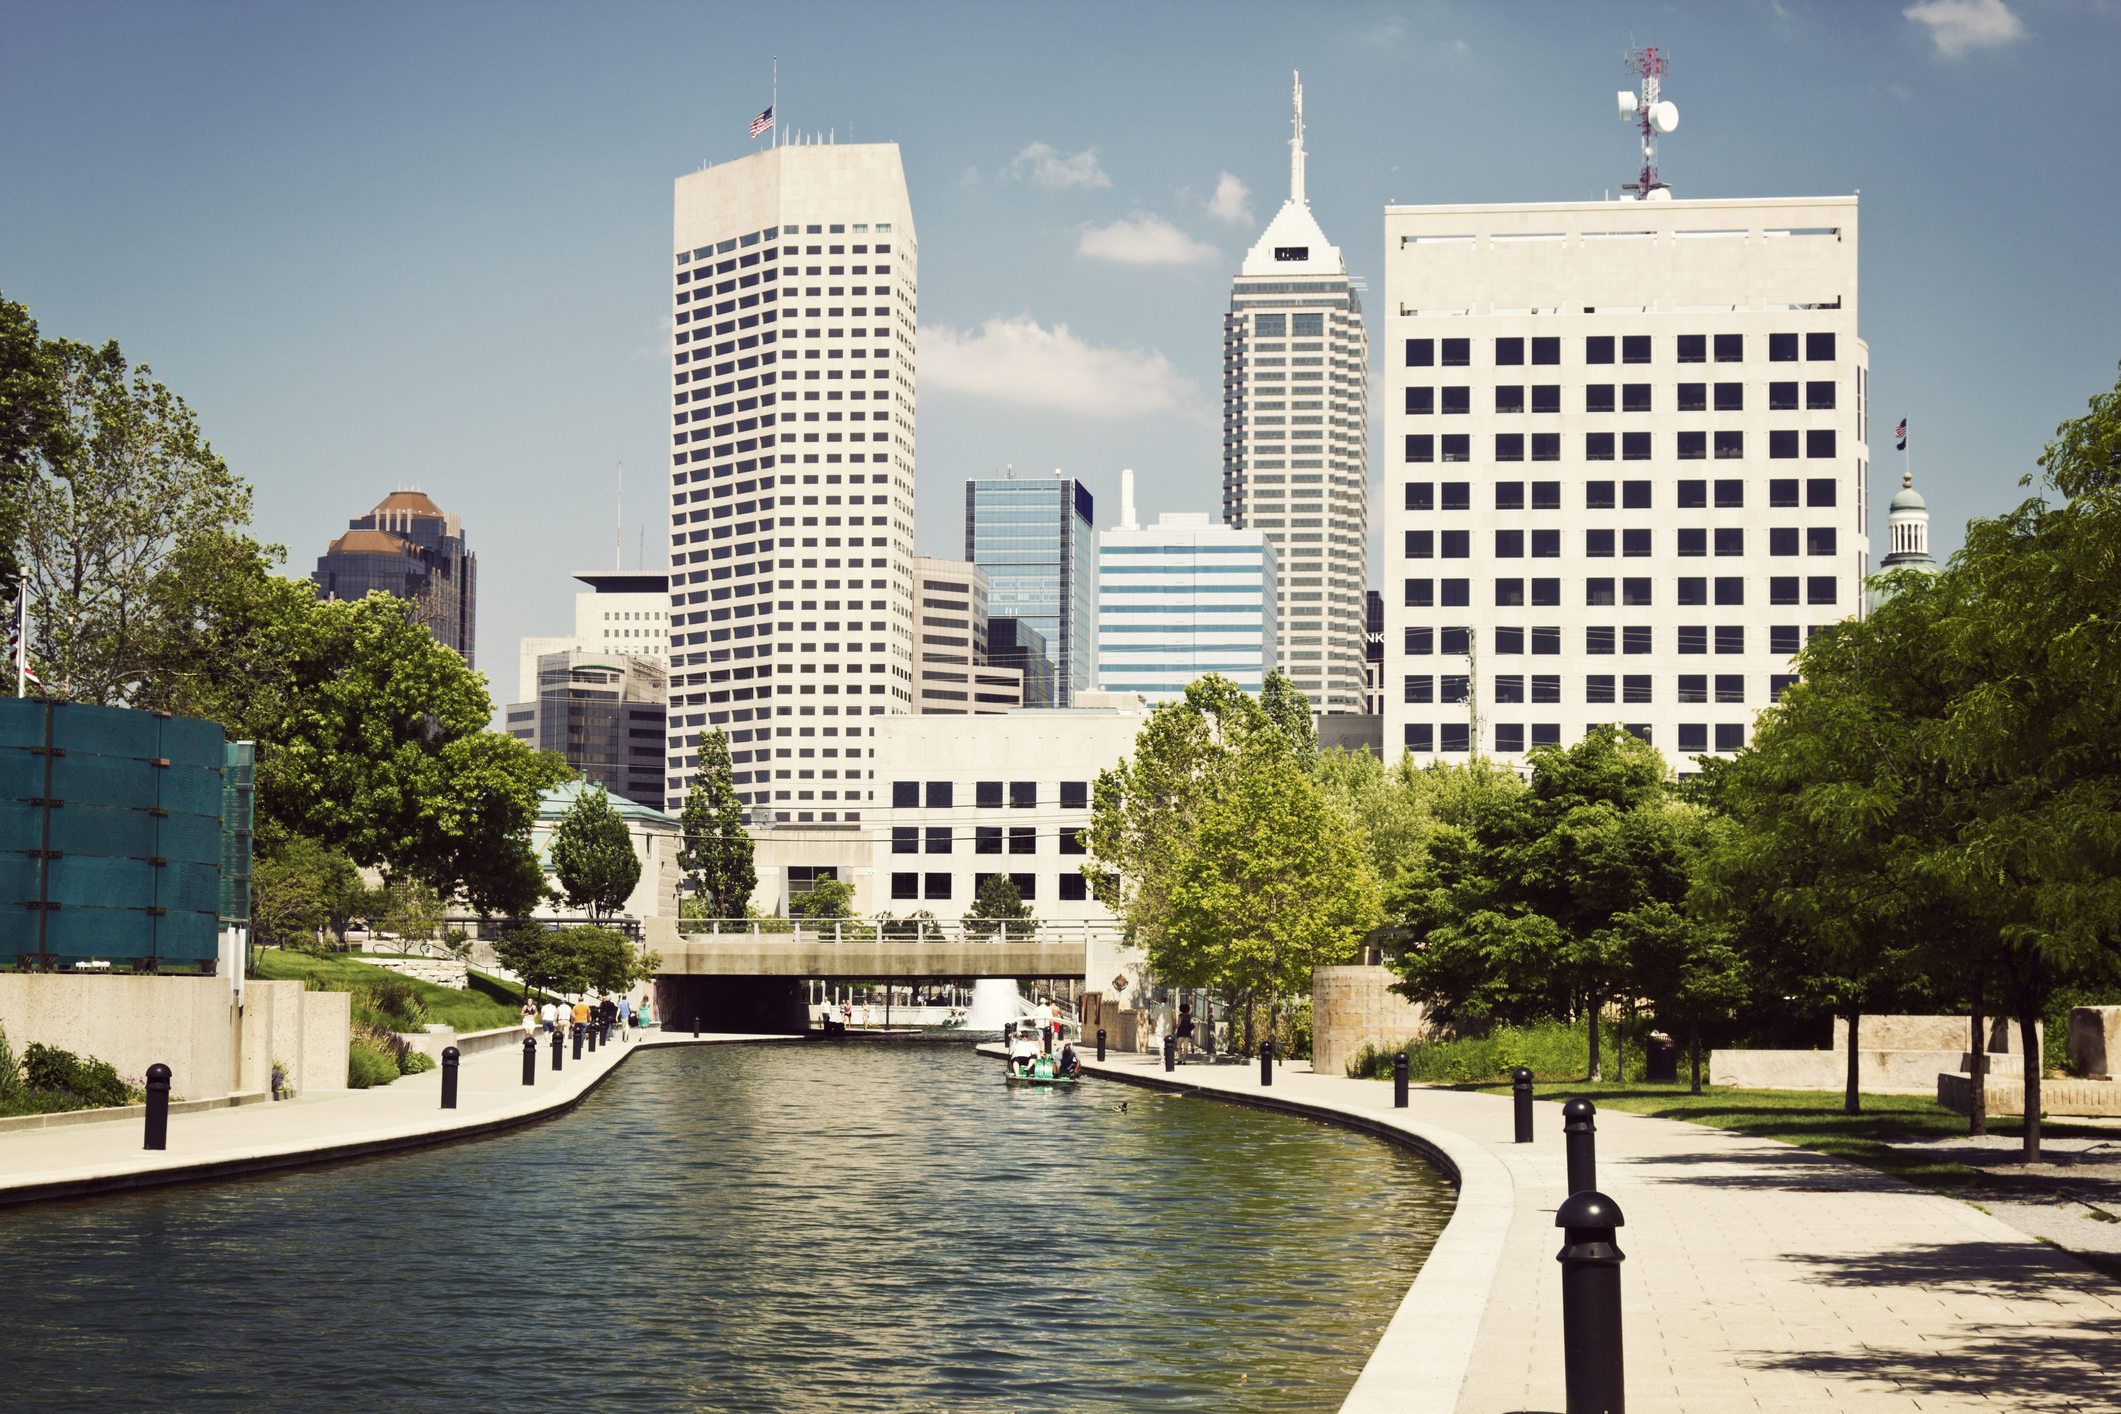 Image of buildings in Indianapolis, Indiana